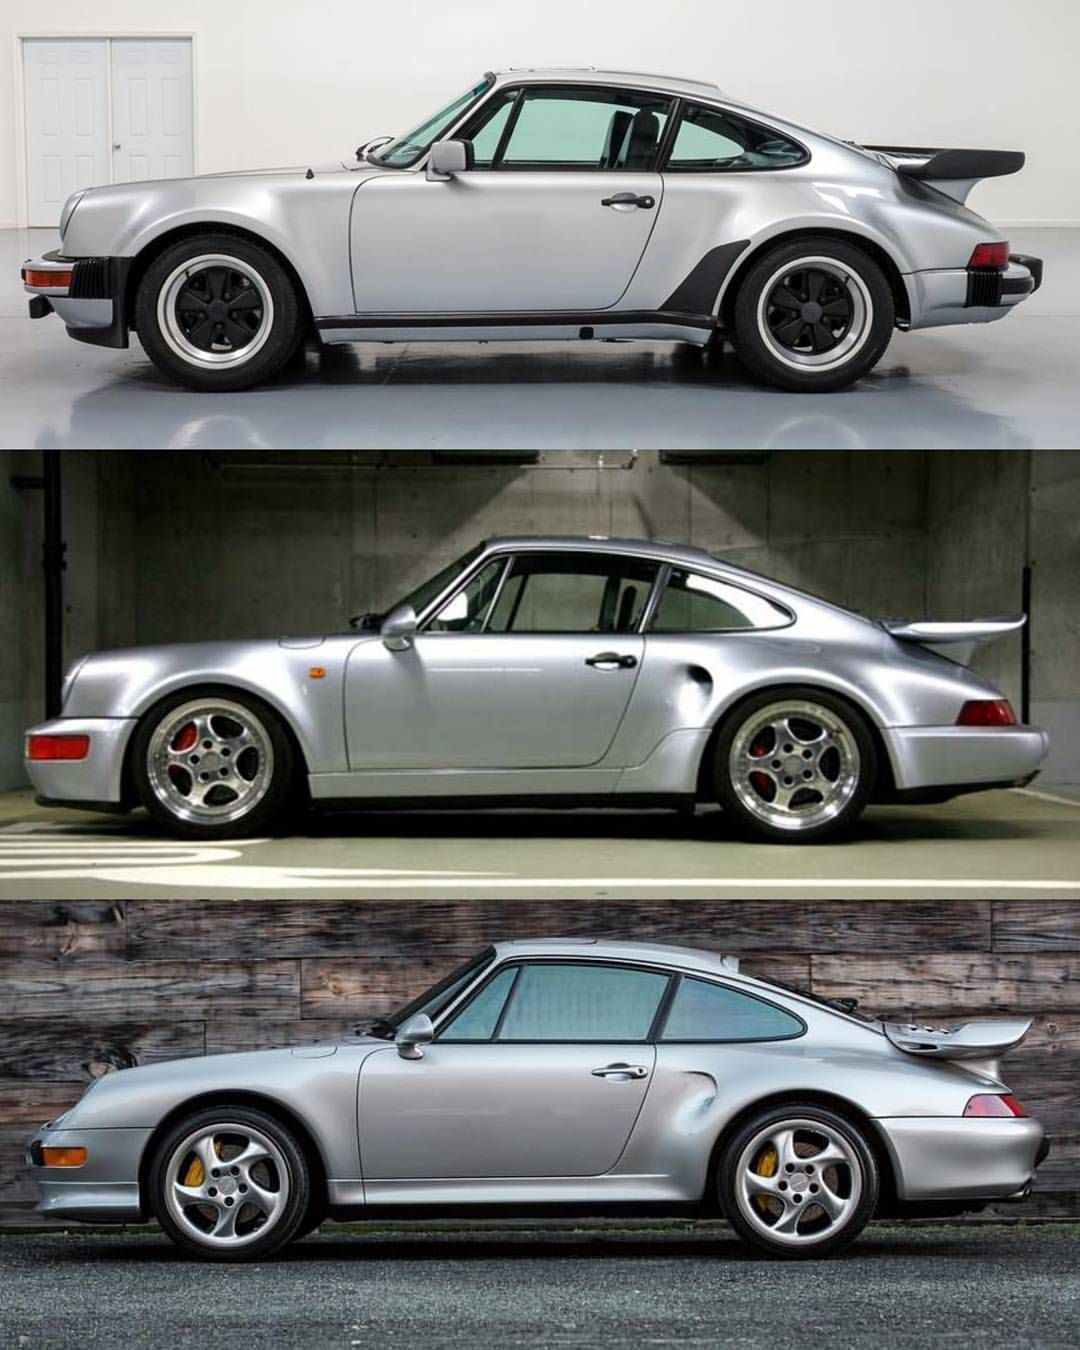 What S Your Favourite Aircooled Turbo 930 964 Or 993 Cr Google Images Cult911 Porscheartdaily Porsche Porsche911 P Porsche Porsche 911 Porsche 964